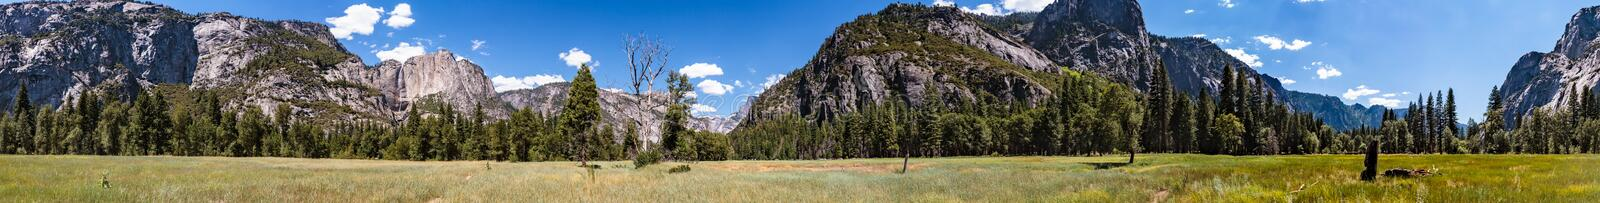 Panorama of meadow in valley of Yosemite National Park royalty free stock images